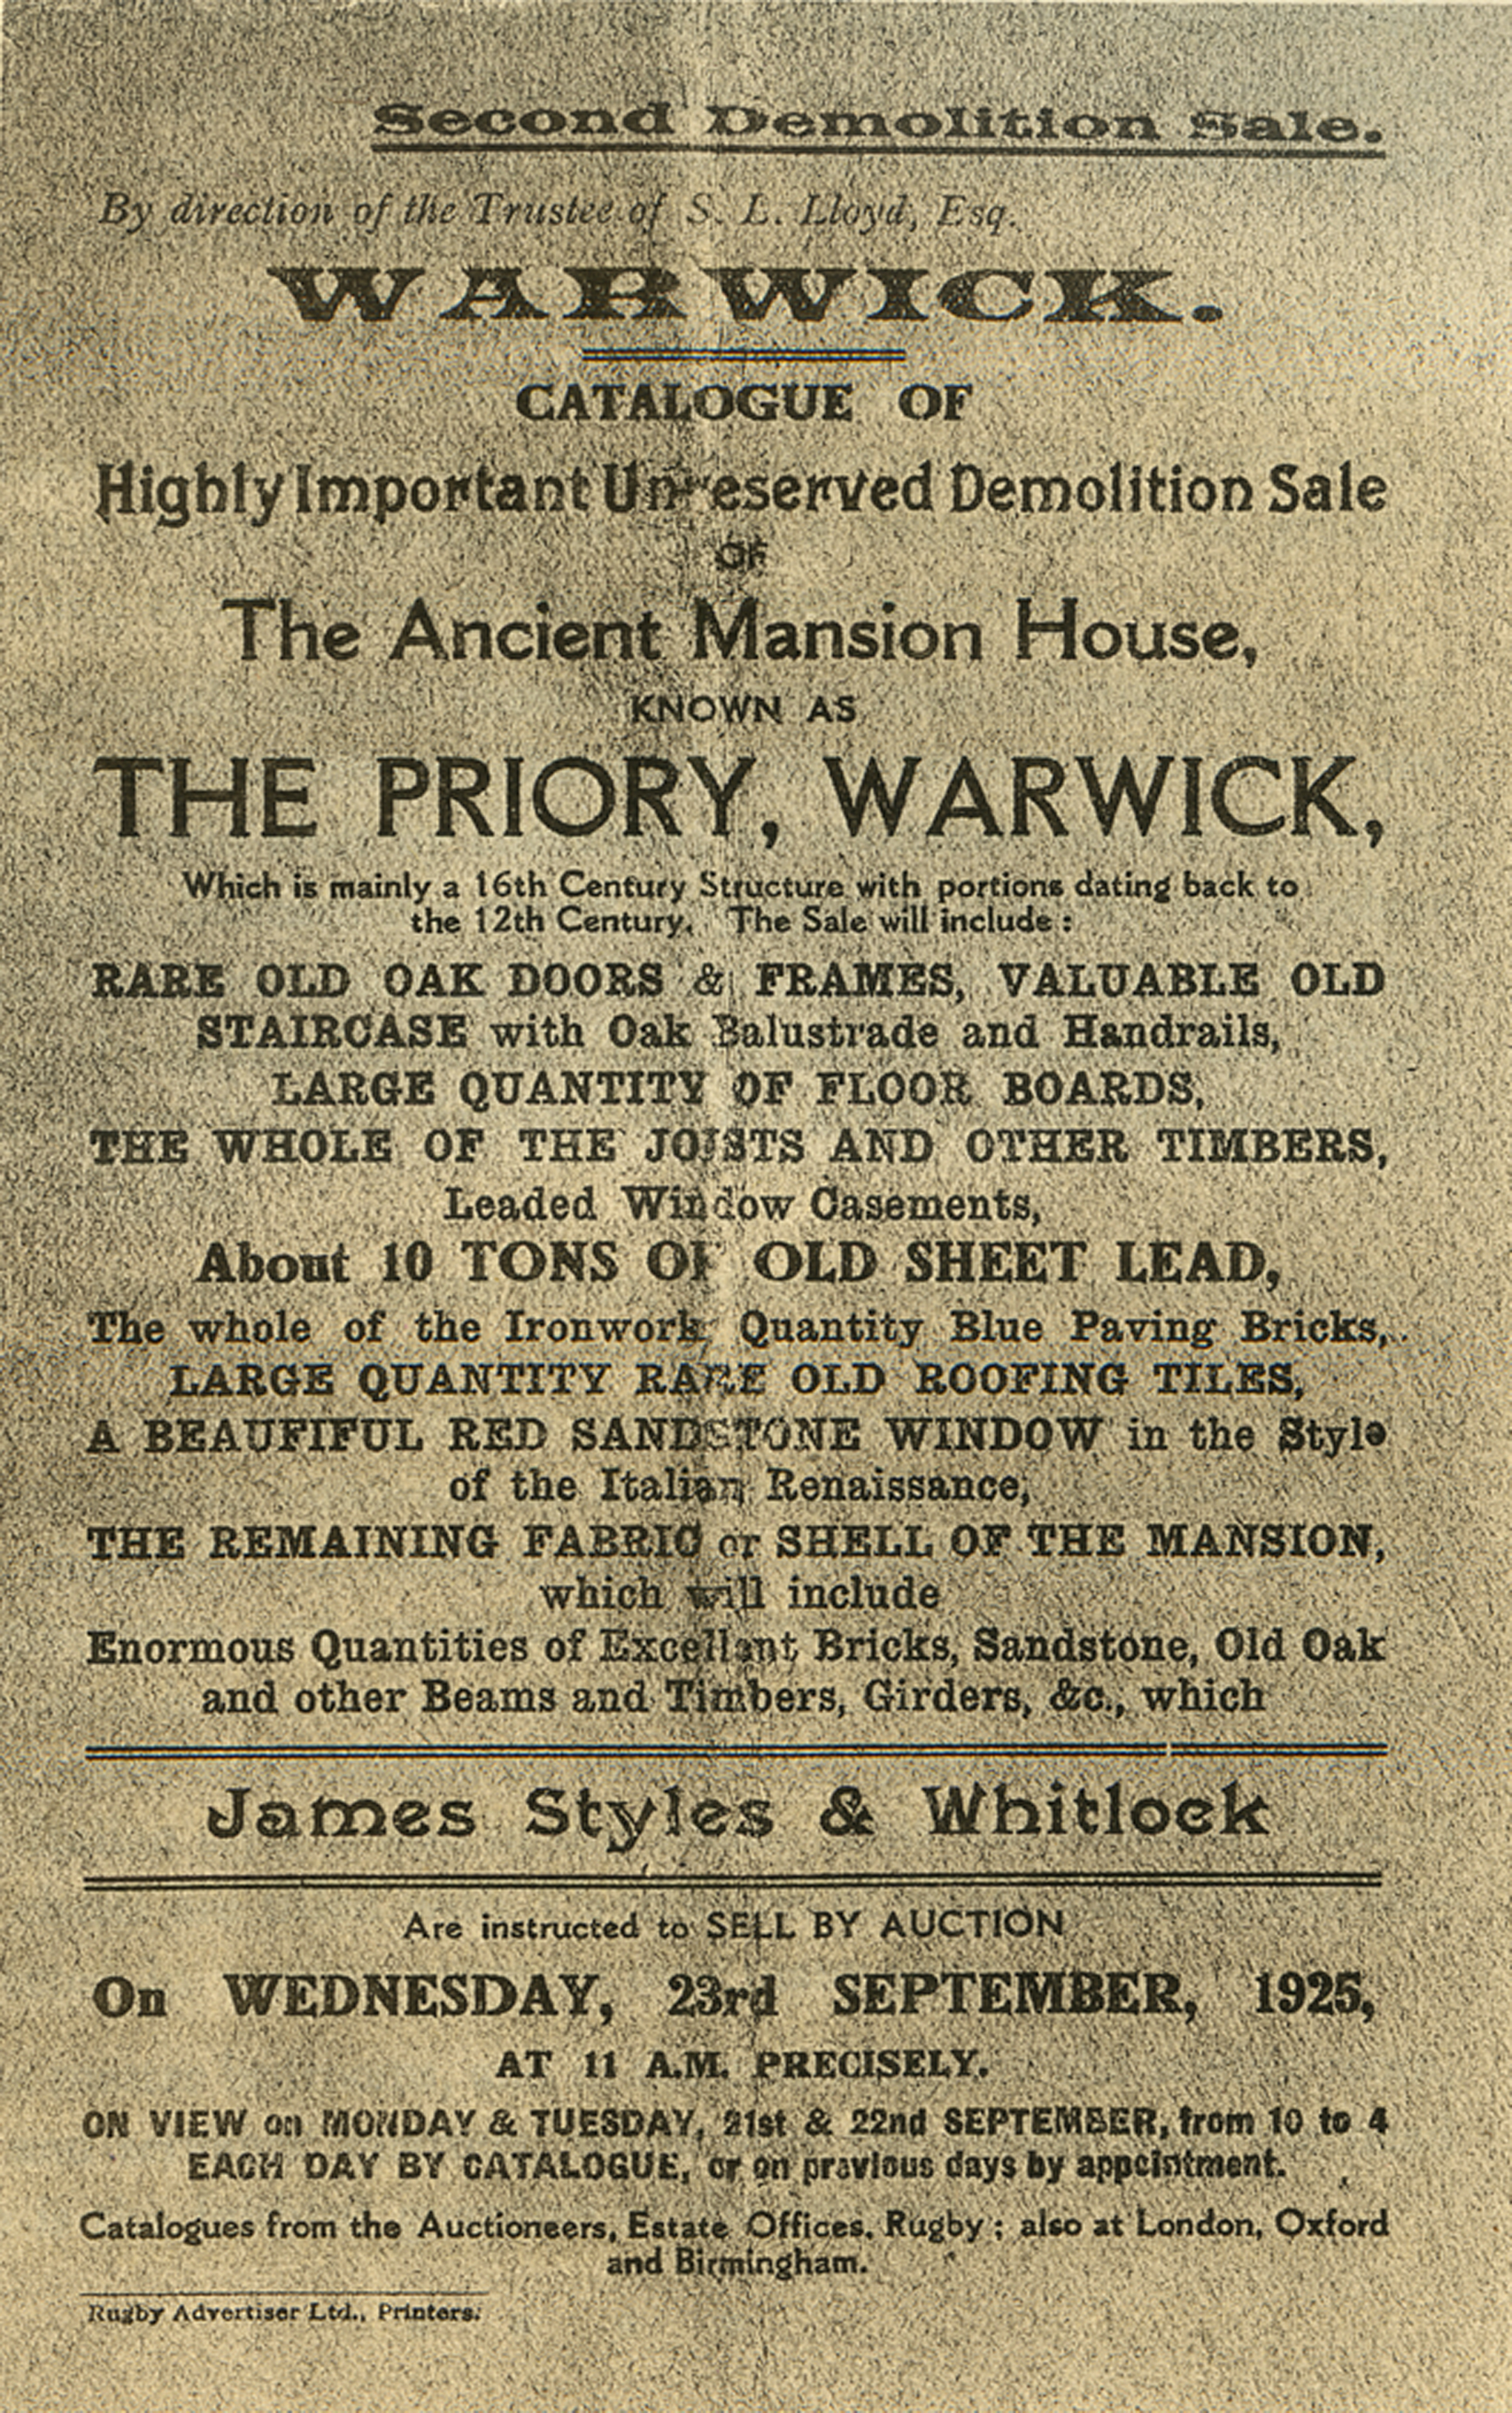 Second Demolition Sale Poster for the Warwick Priory (Before Becoming Virginia House), 1925, as depicted in Alexander Weddell's